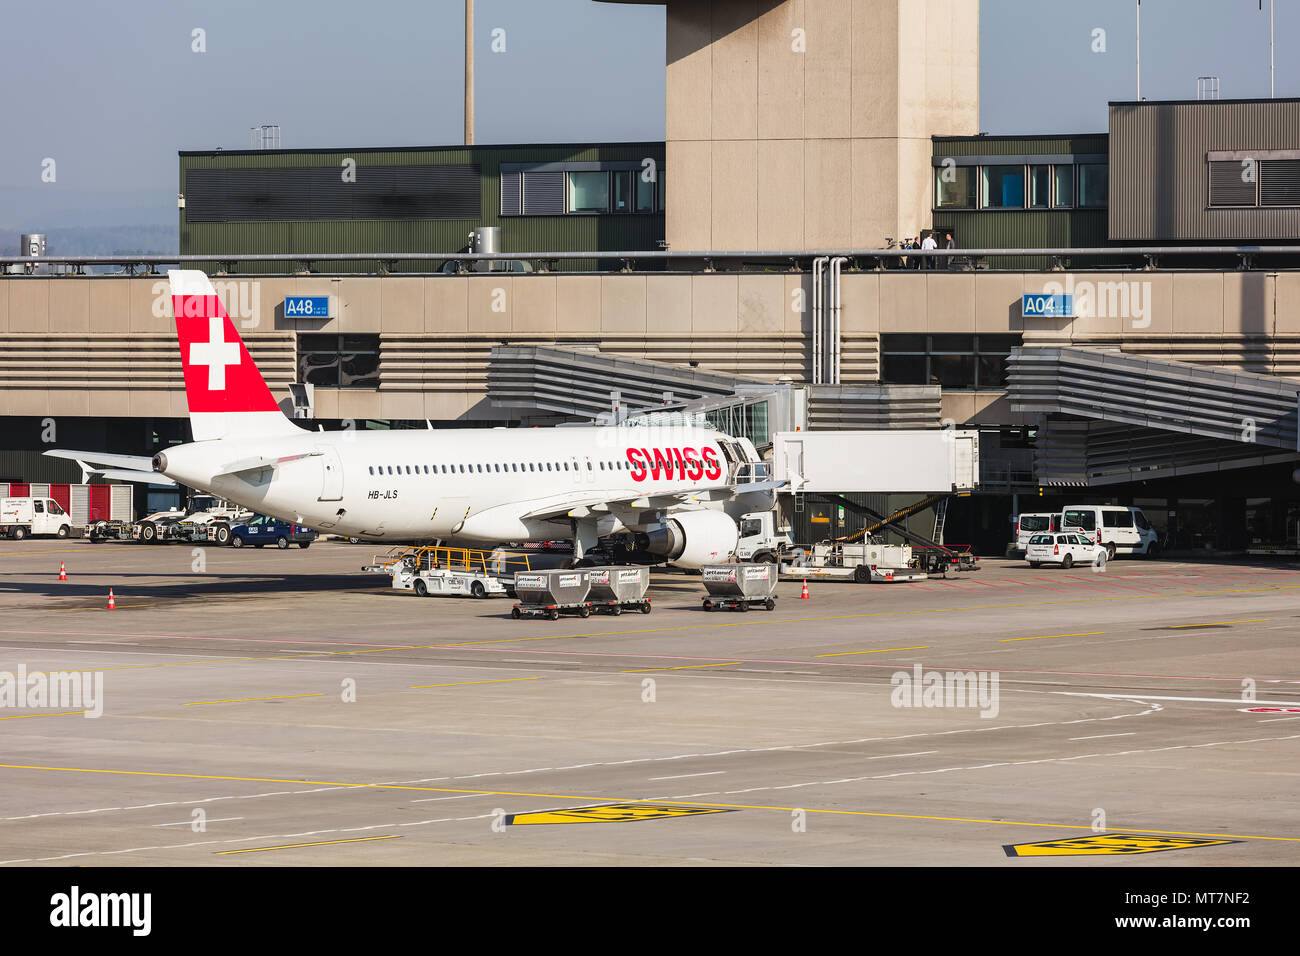 An Airbus A320-214 of the Swiss International Airlines at a terminal at Zurich airport. - Stock Image